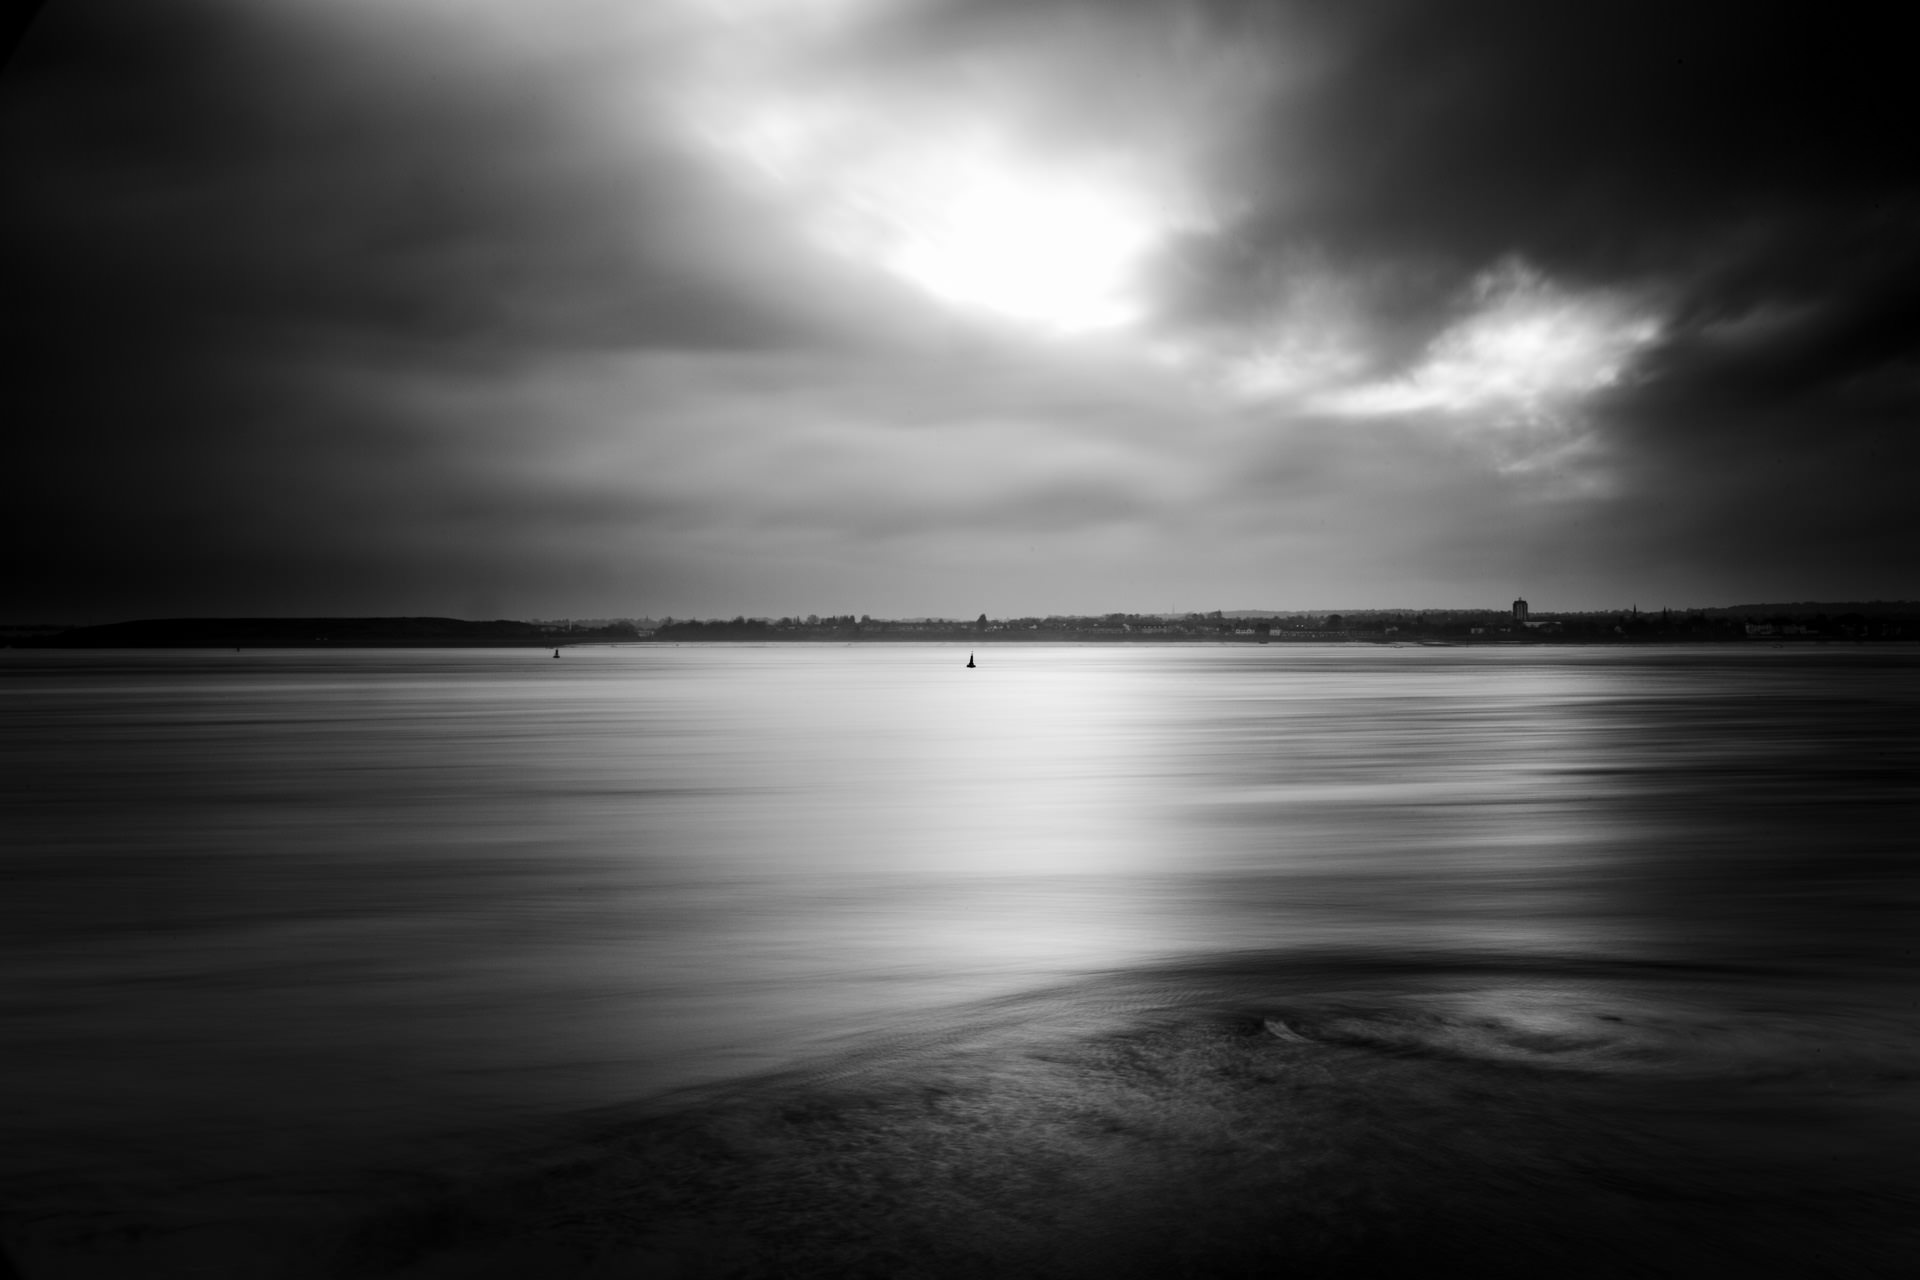 December - a long exposure (13 seconds) looking out across the Mersey from Otterspool promenade.